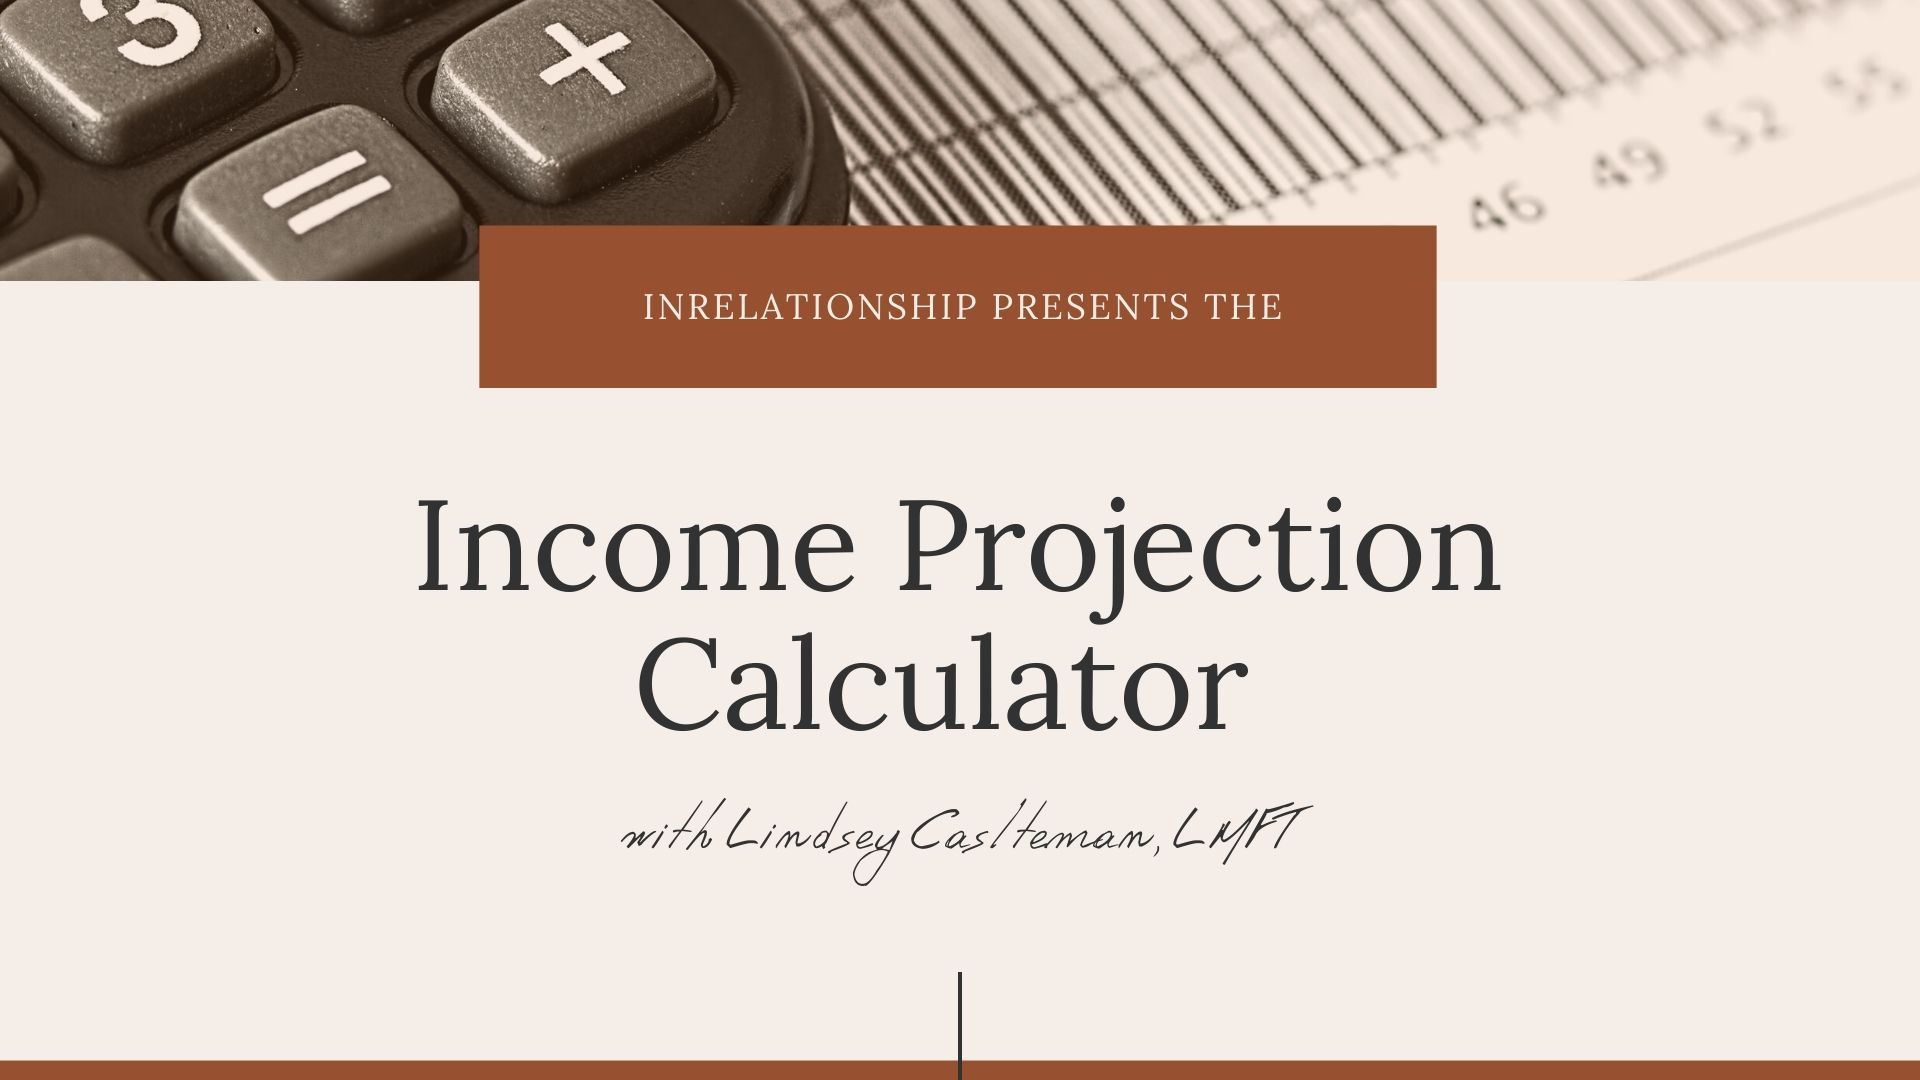 Income Projection Calculator